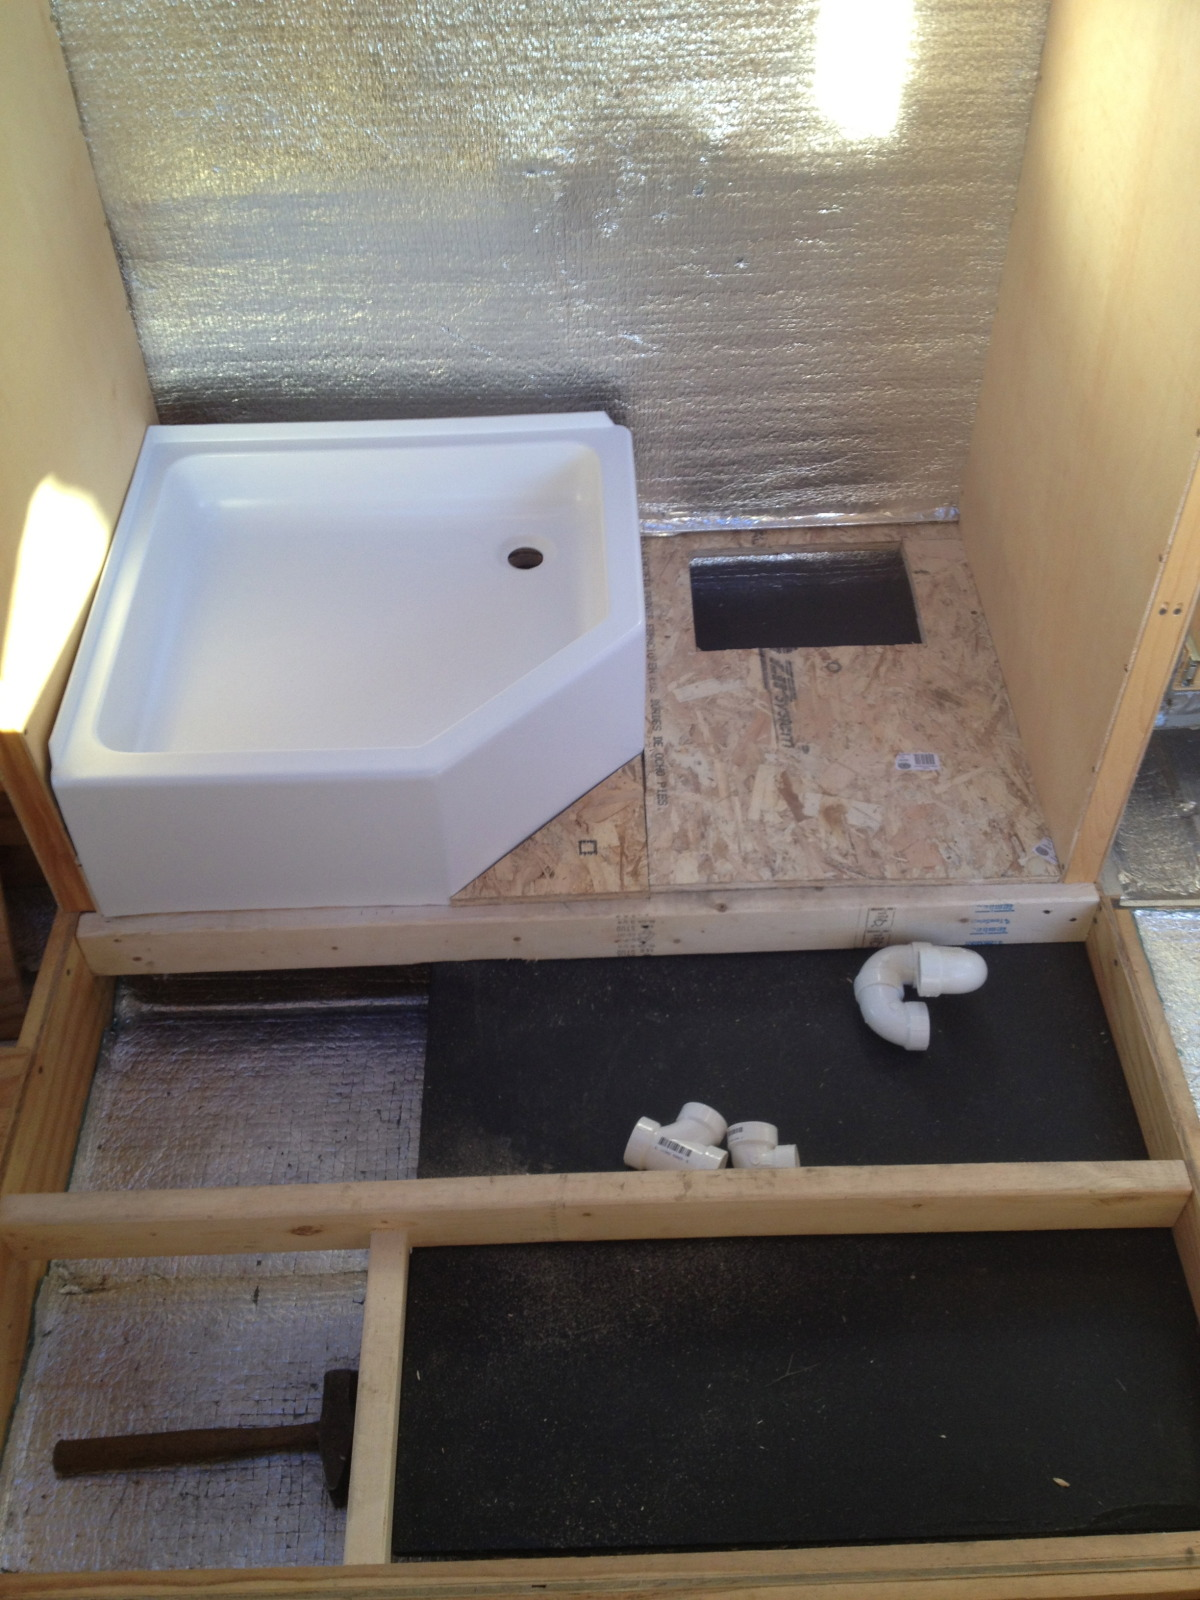 Shower pan in place with a hole cut in the floor for access to the gray water tank drain under the bathroom sink.